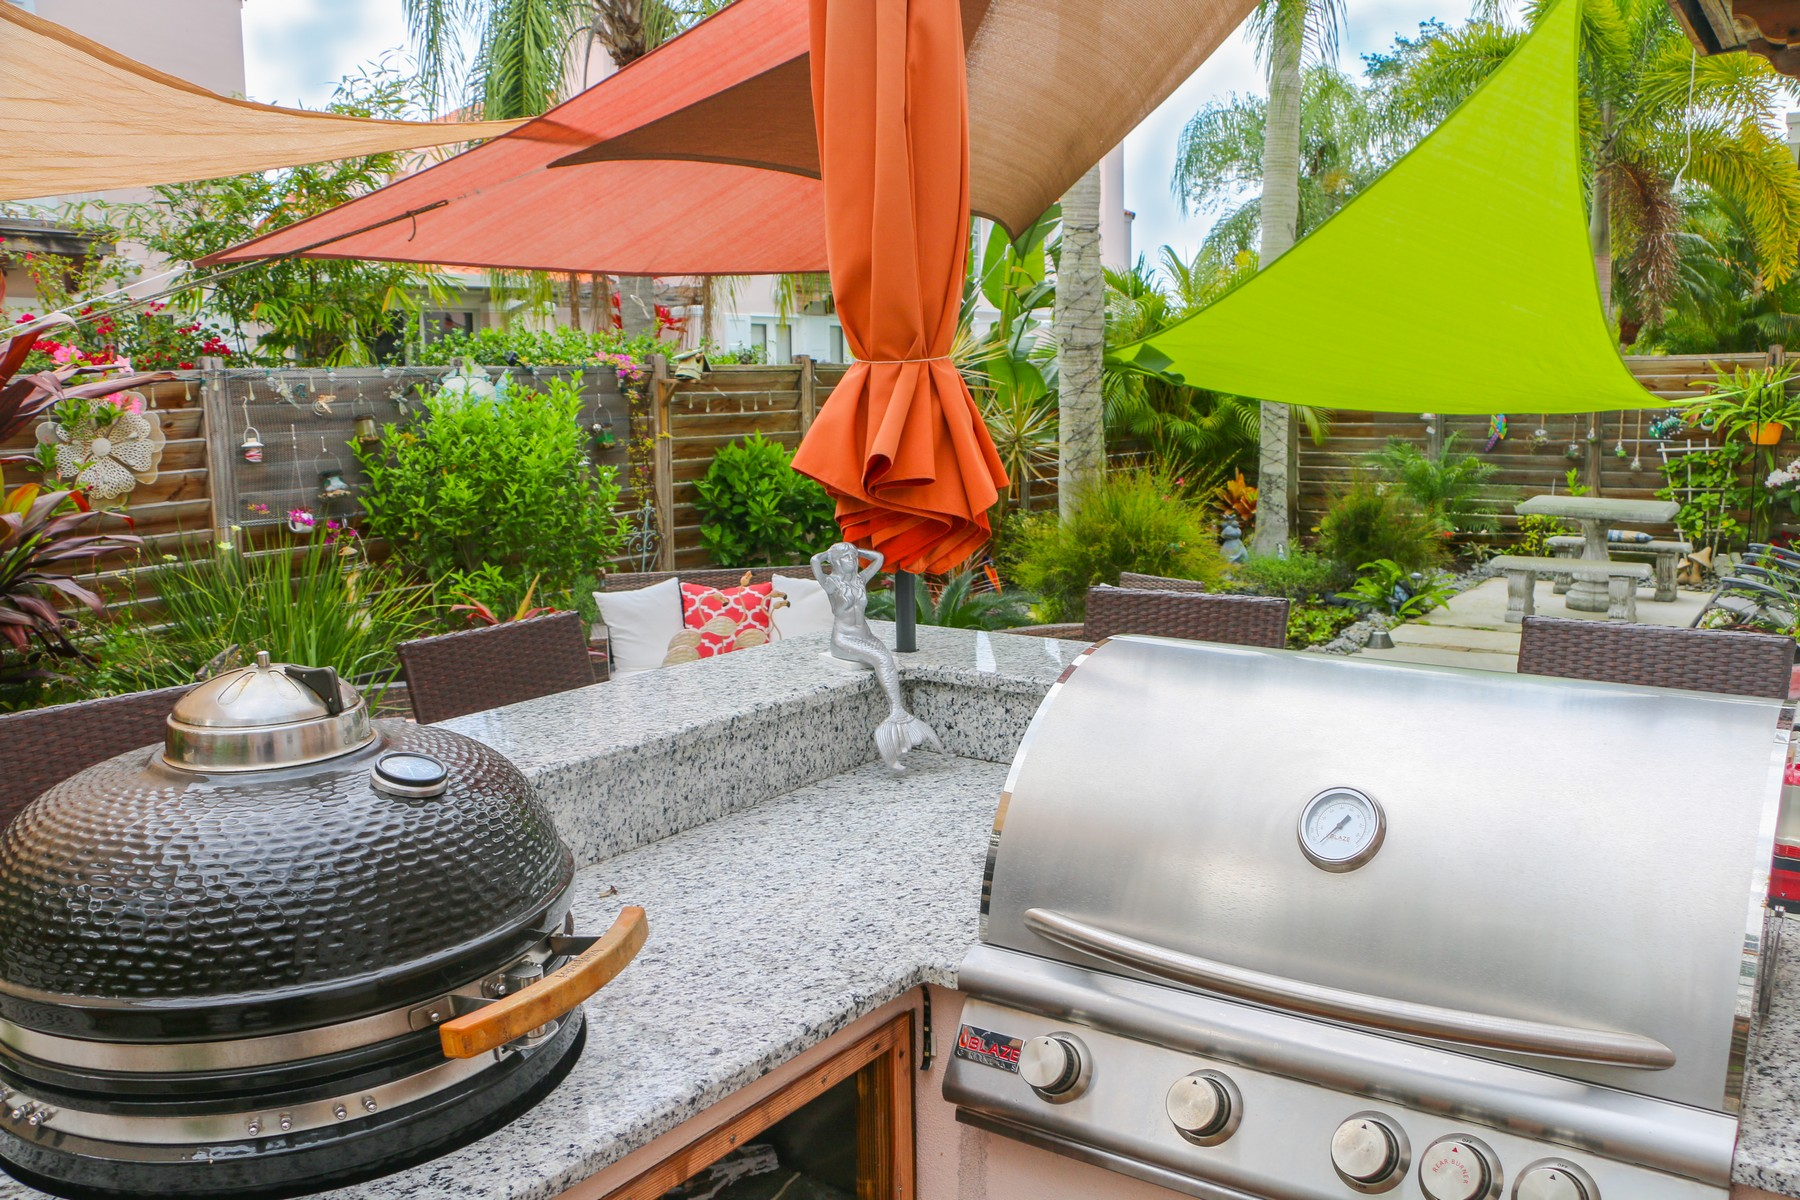 Additional photo for property listing at The Nicest Home in Wood Duck Circle! 4838 Wood Duck Circle Vero Beach, Florida 32967 United States